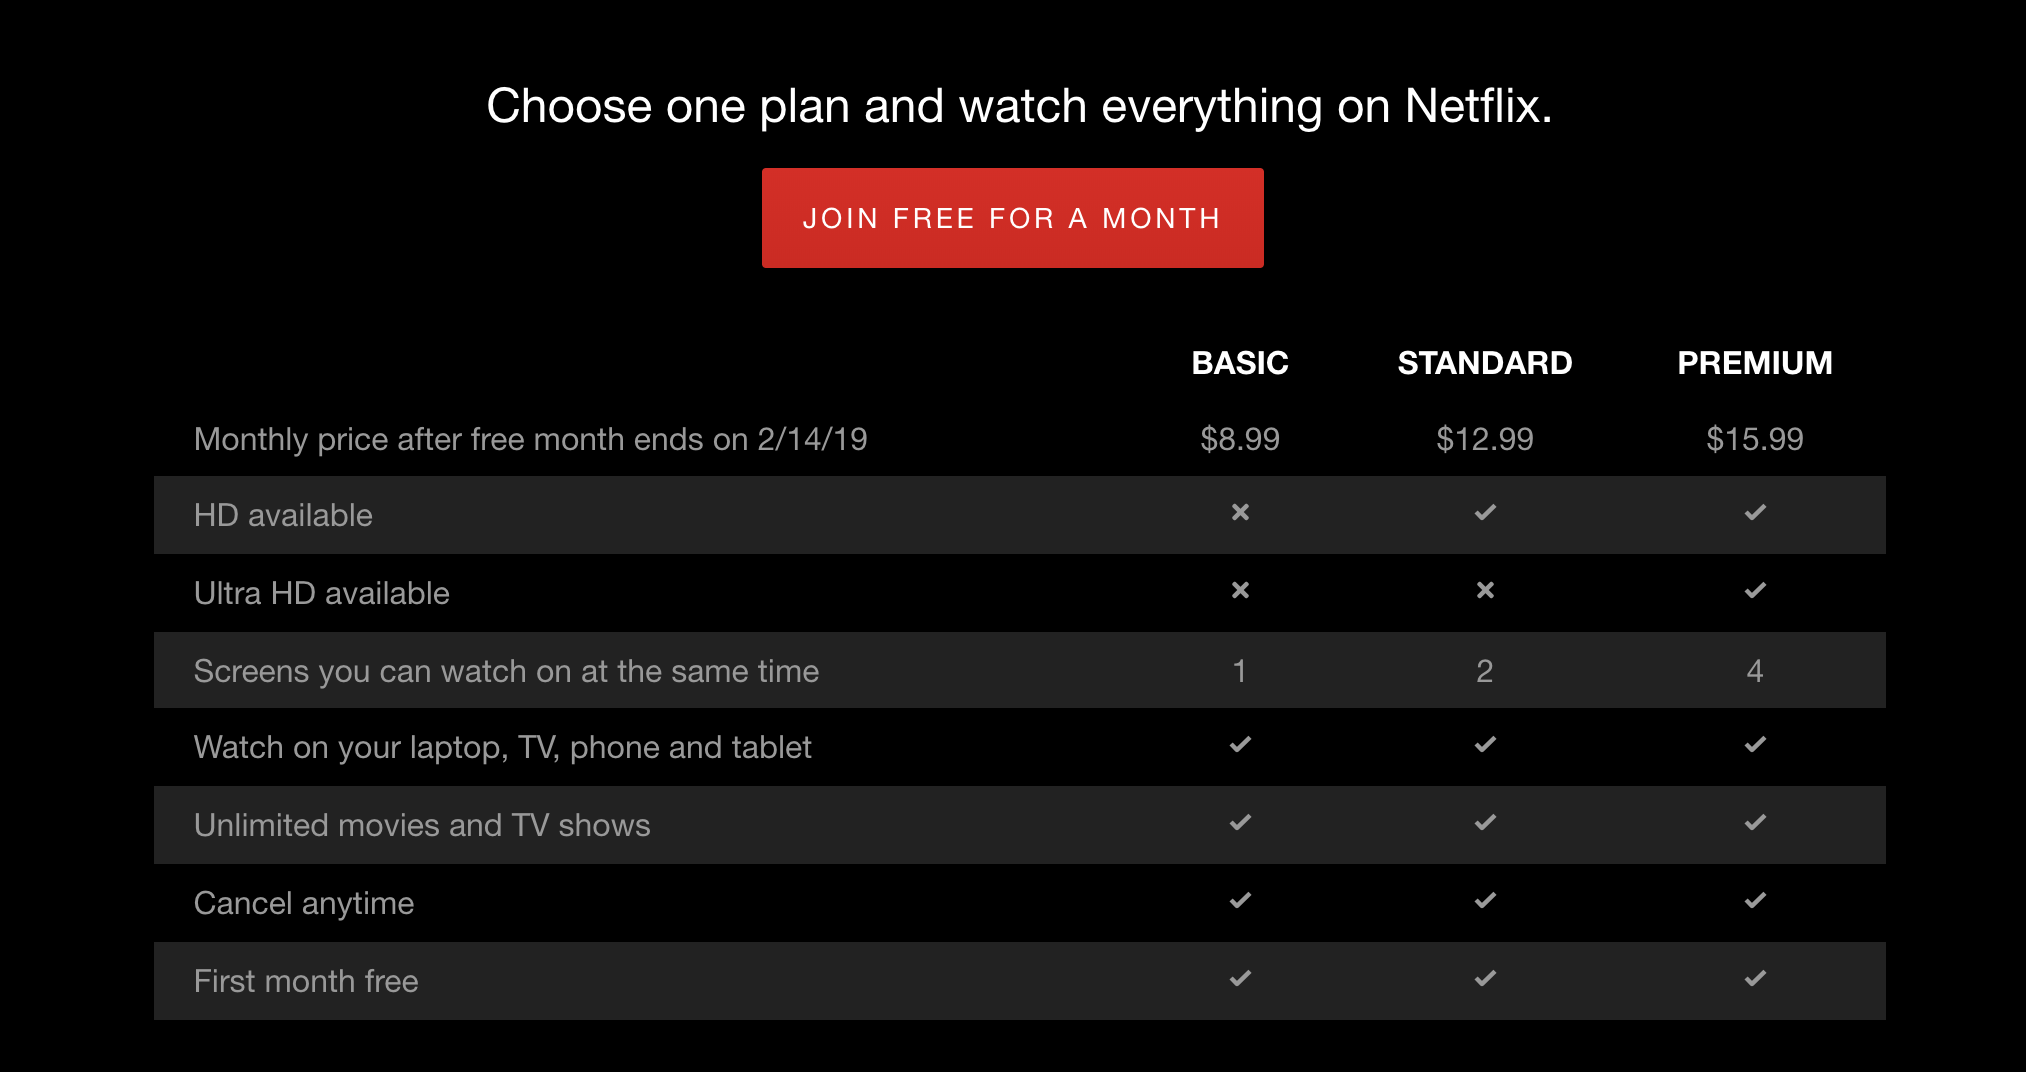 Netflix, raising, prices, price, increase, hike, 2019, history, of, Netflix, pricing, disney, hbo, streaming, compare, compete